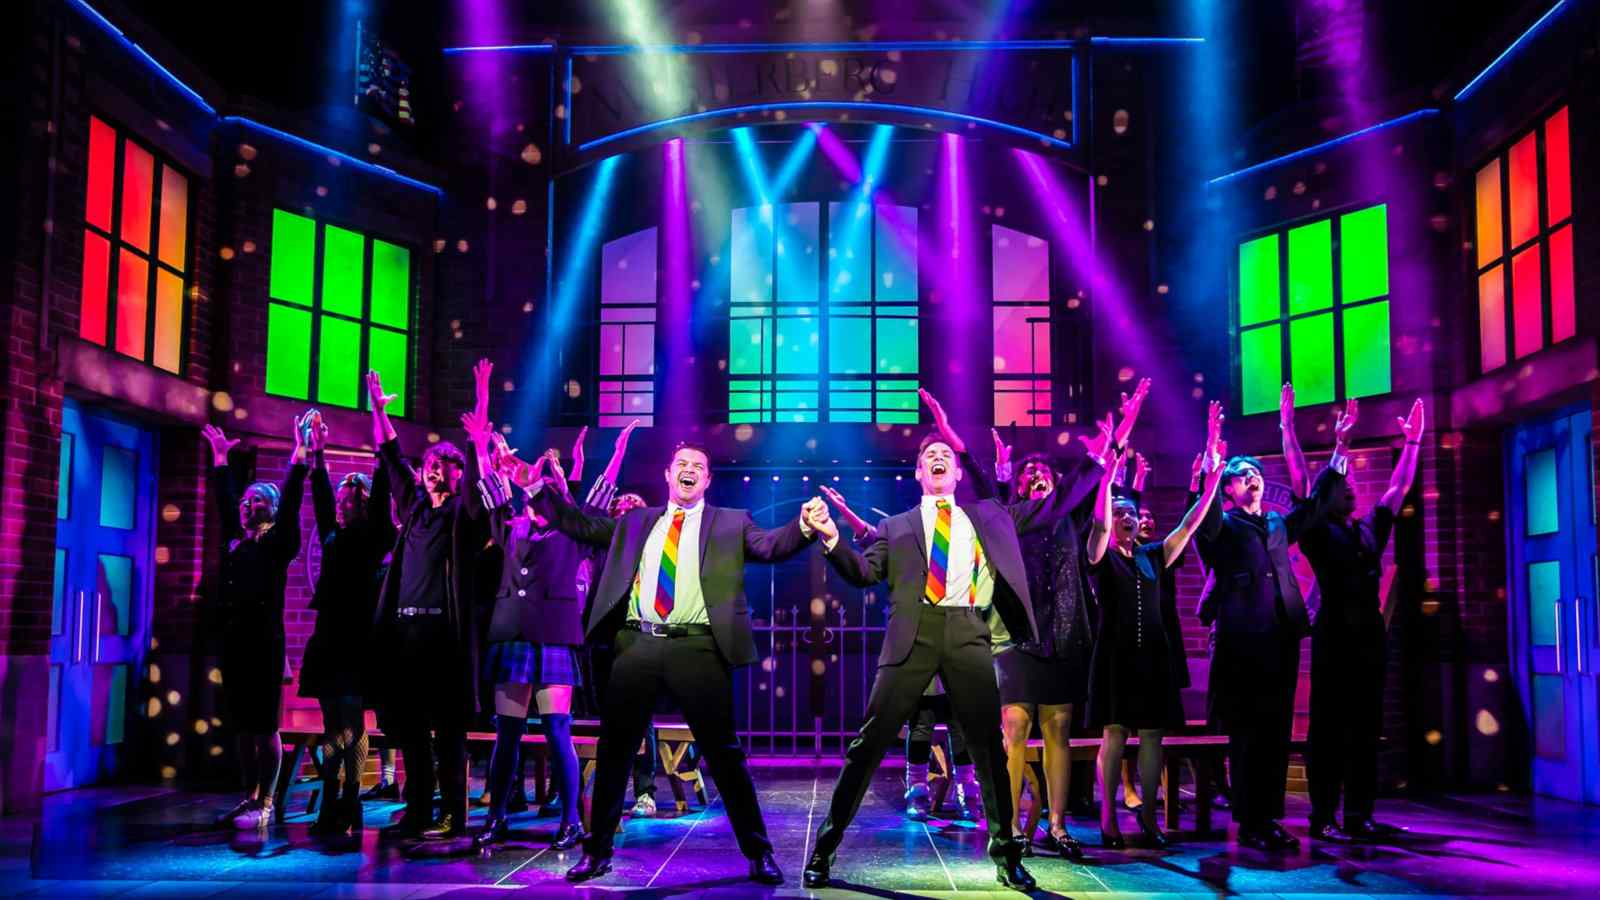 Heathers the Musical doesn't feature gay characters but it's super camp, colorful and does have one amusing homosexual scene